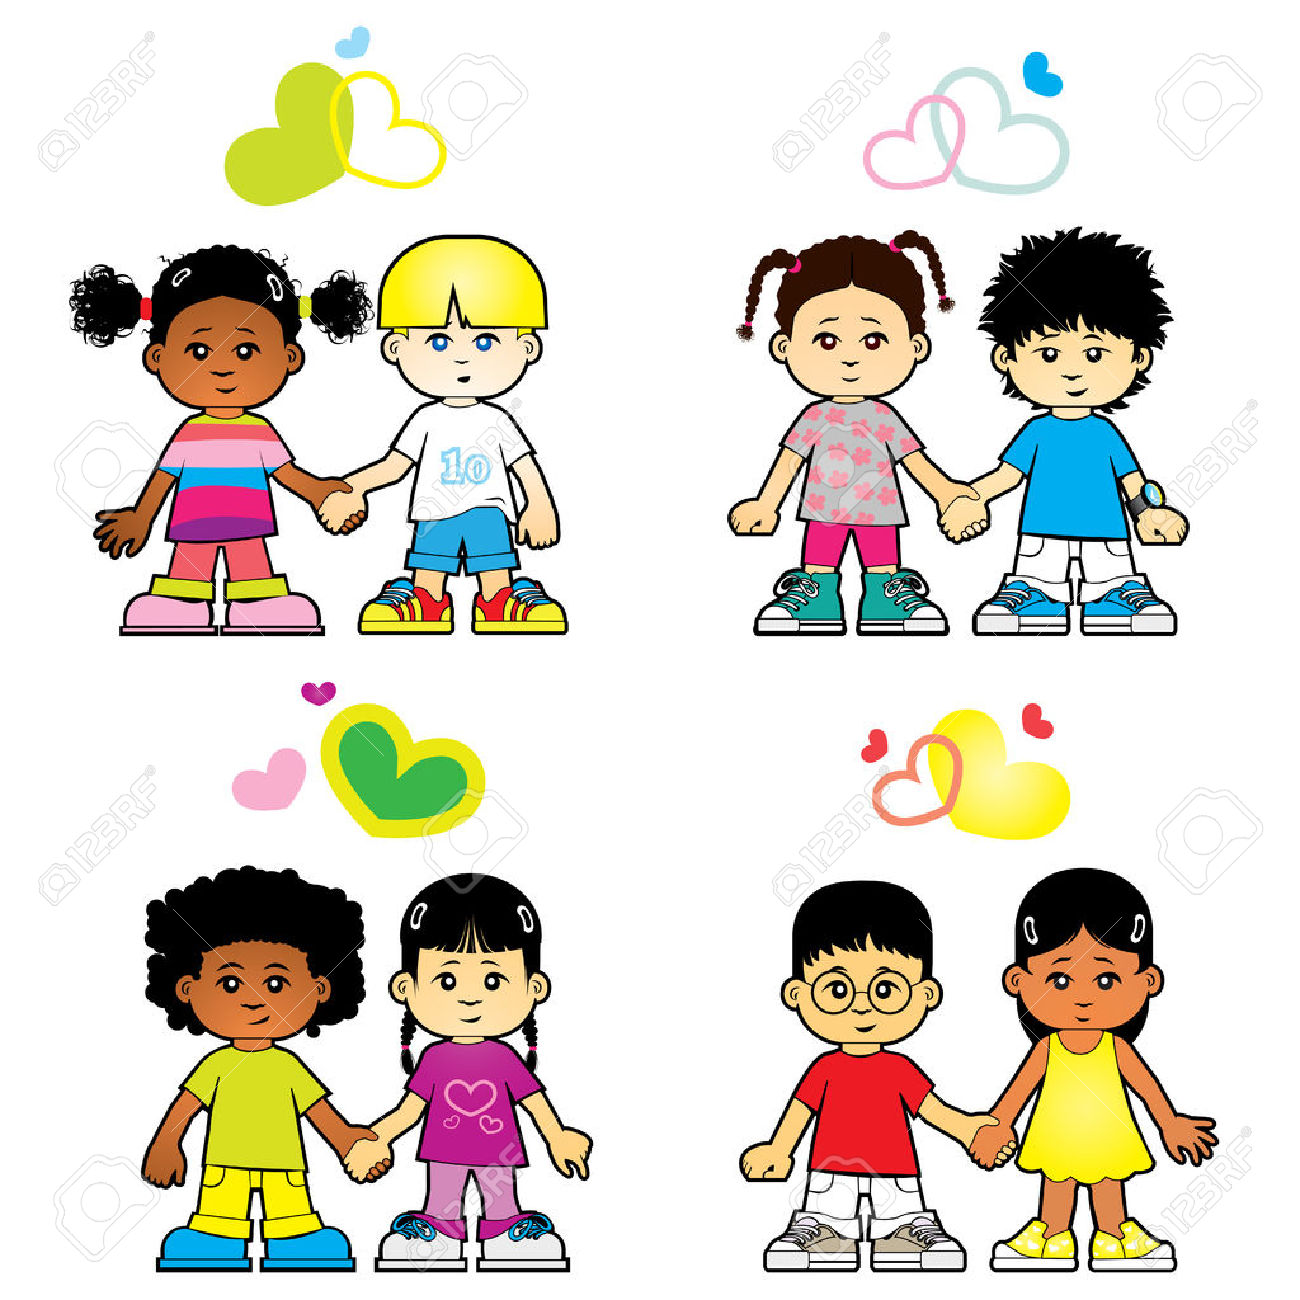 Children Love Each Other Royalty Free Cliparts, Vectors, And Stock ... svg library